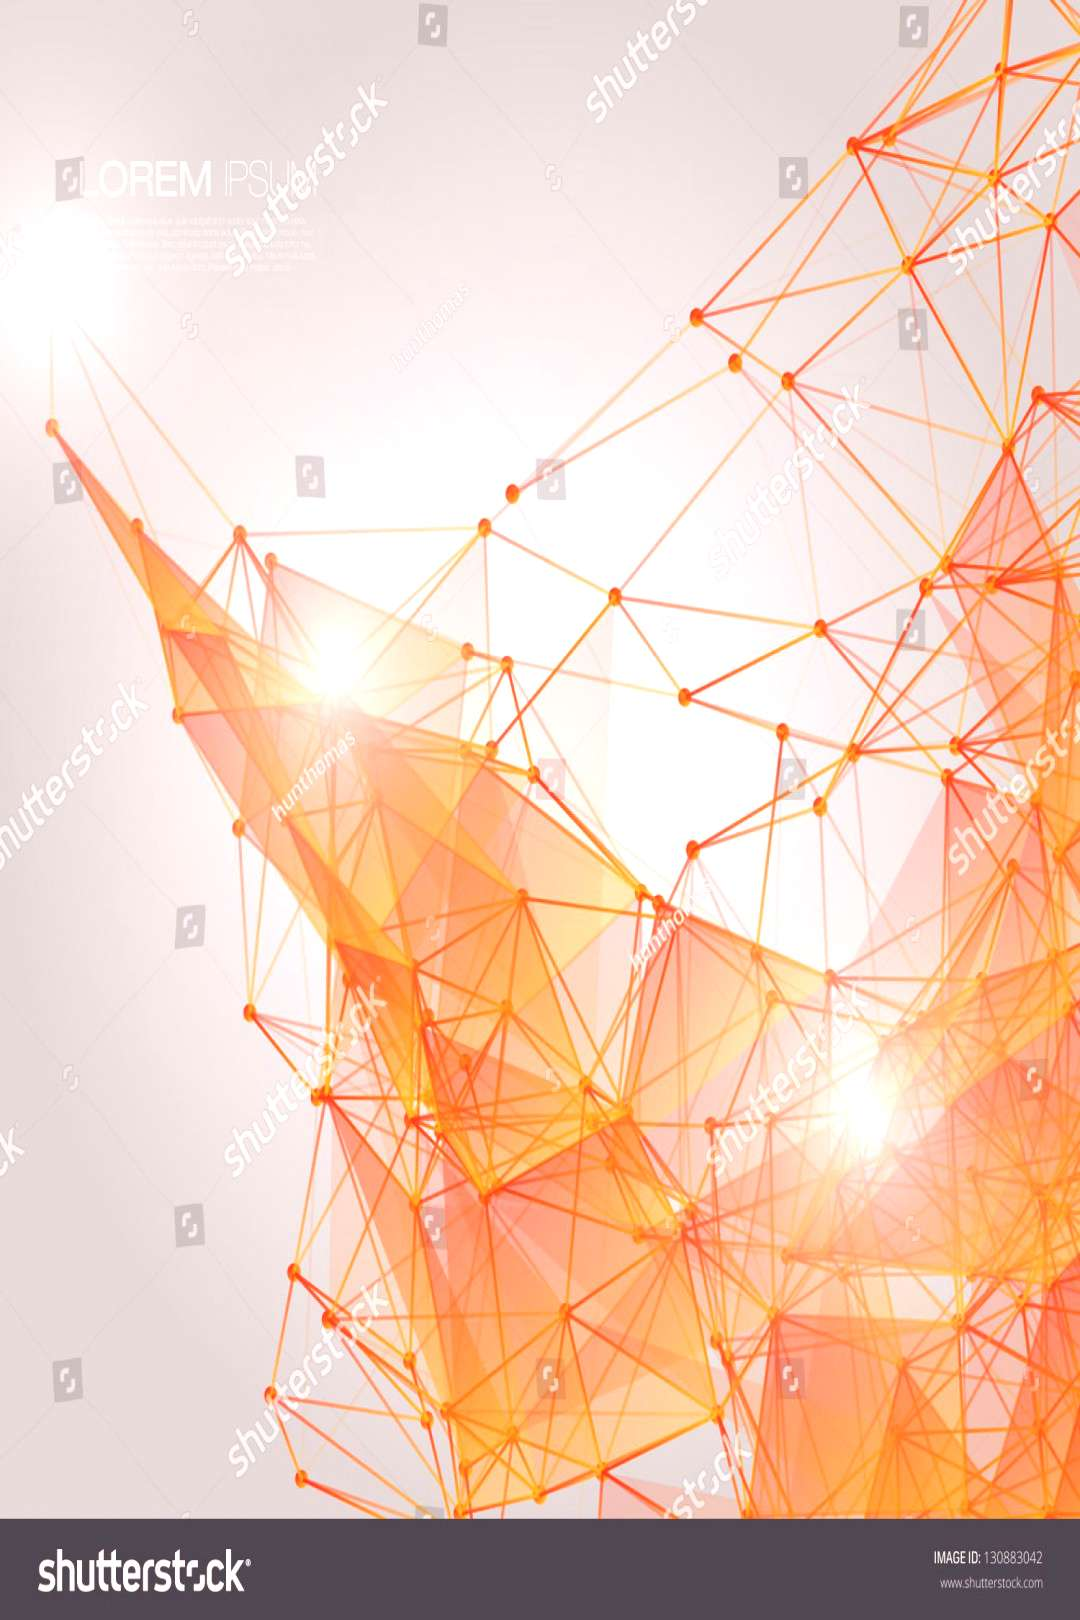 3D Orange Abstract Mesh Background with Circles, Lines and Shapes EPS10 Design Layout for Your Busi